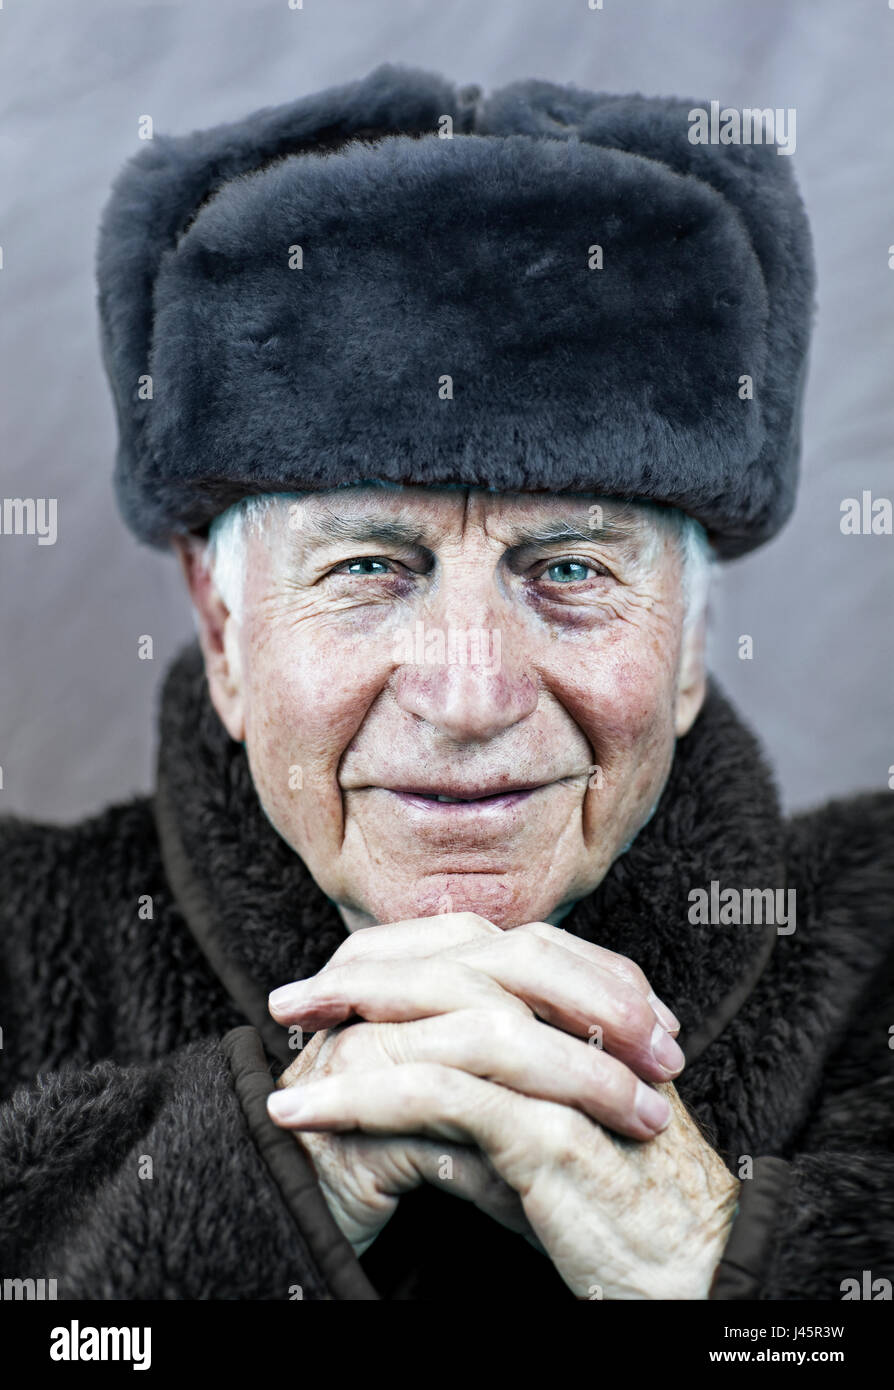 1f5846f1ba2 Old Caucasian man with wrinkled weathered face with vibrant blue eyes  wearing a soviet era Russian military uniform with beaver fur winter hat